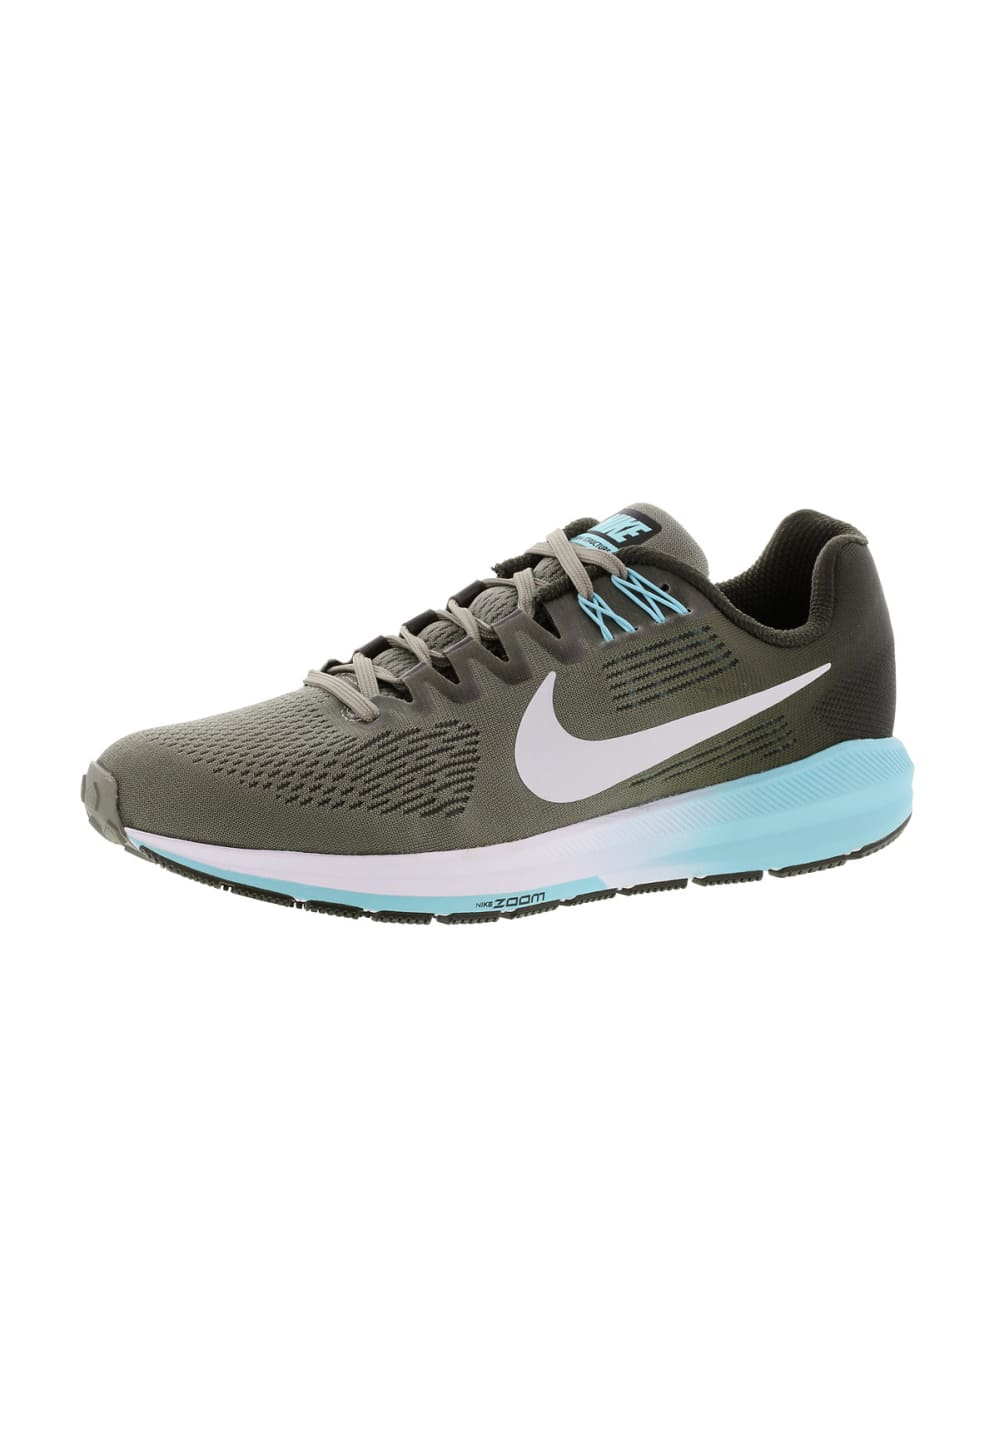 newest 7e2bb f4c4b Nike Air Zoom Structure 21 - Running shoes for Women - Green